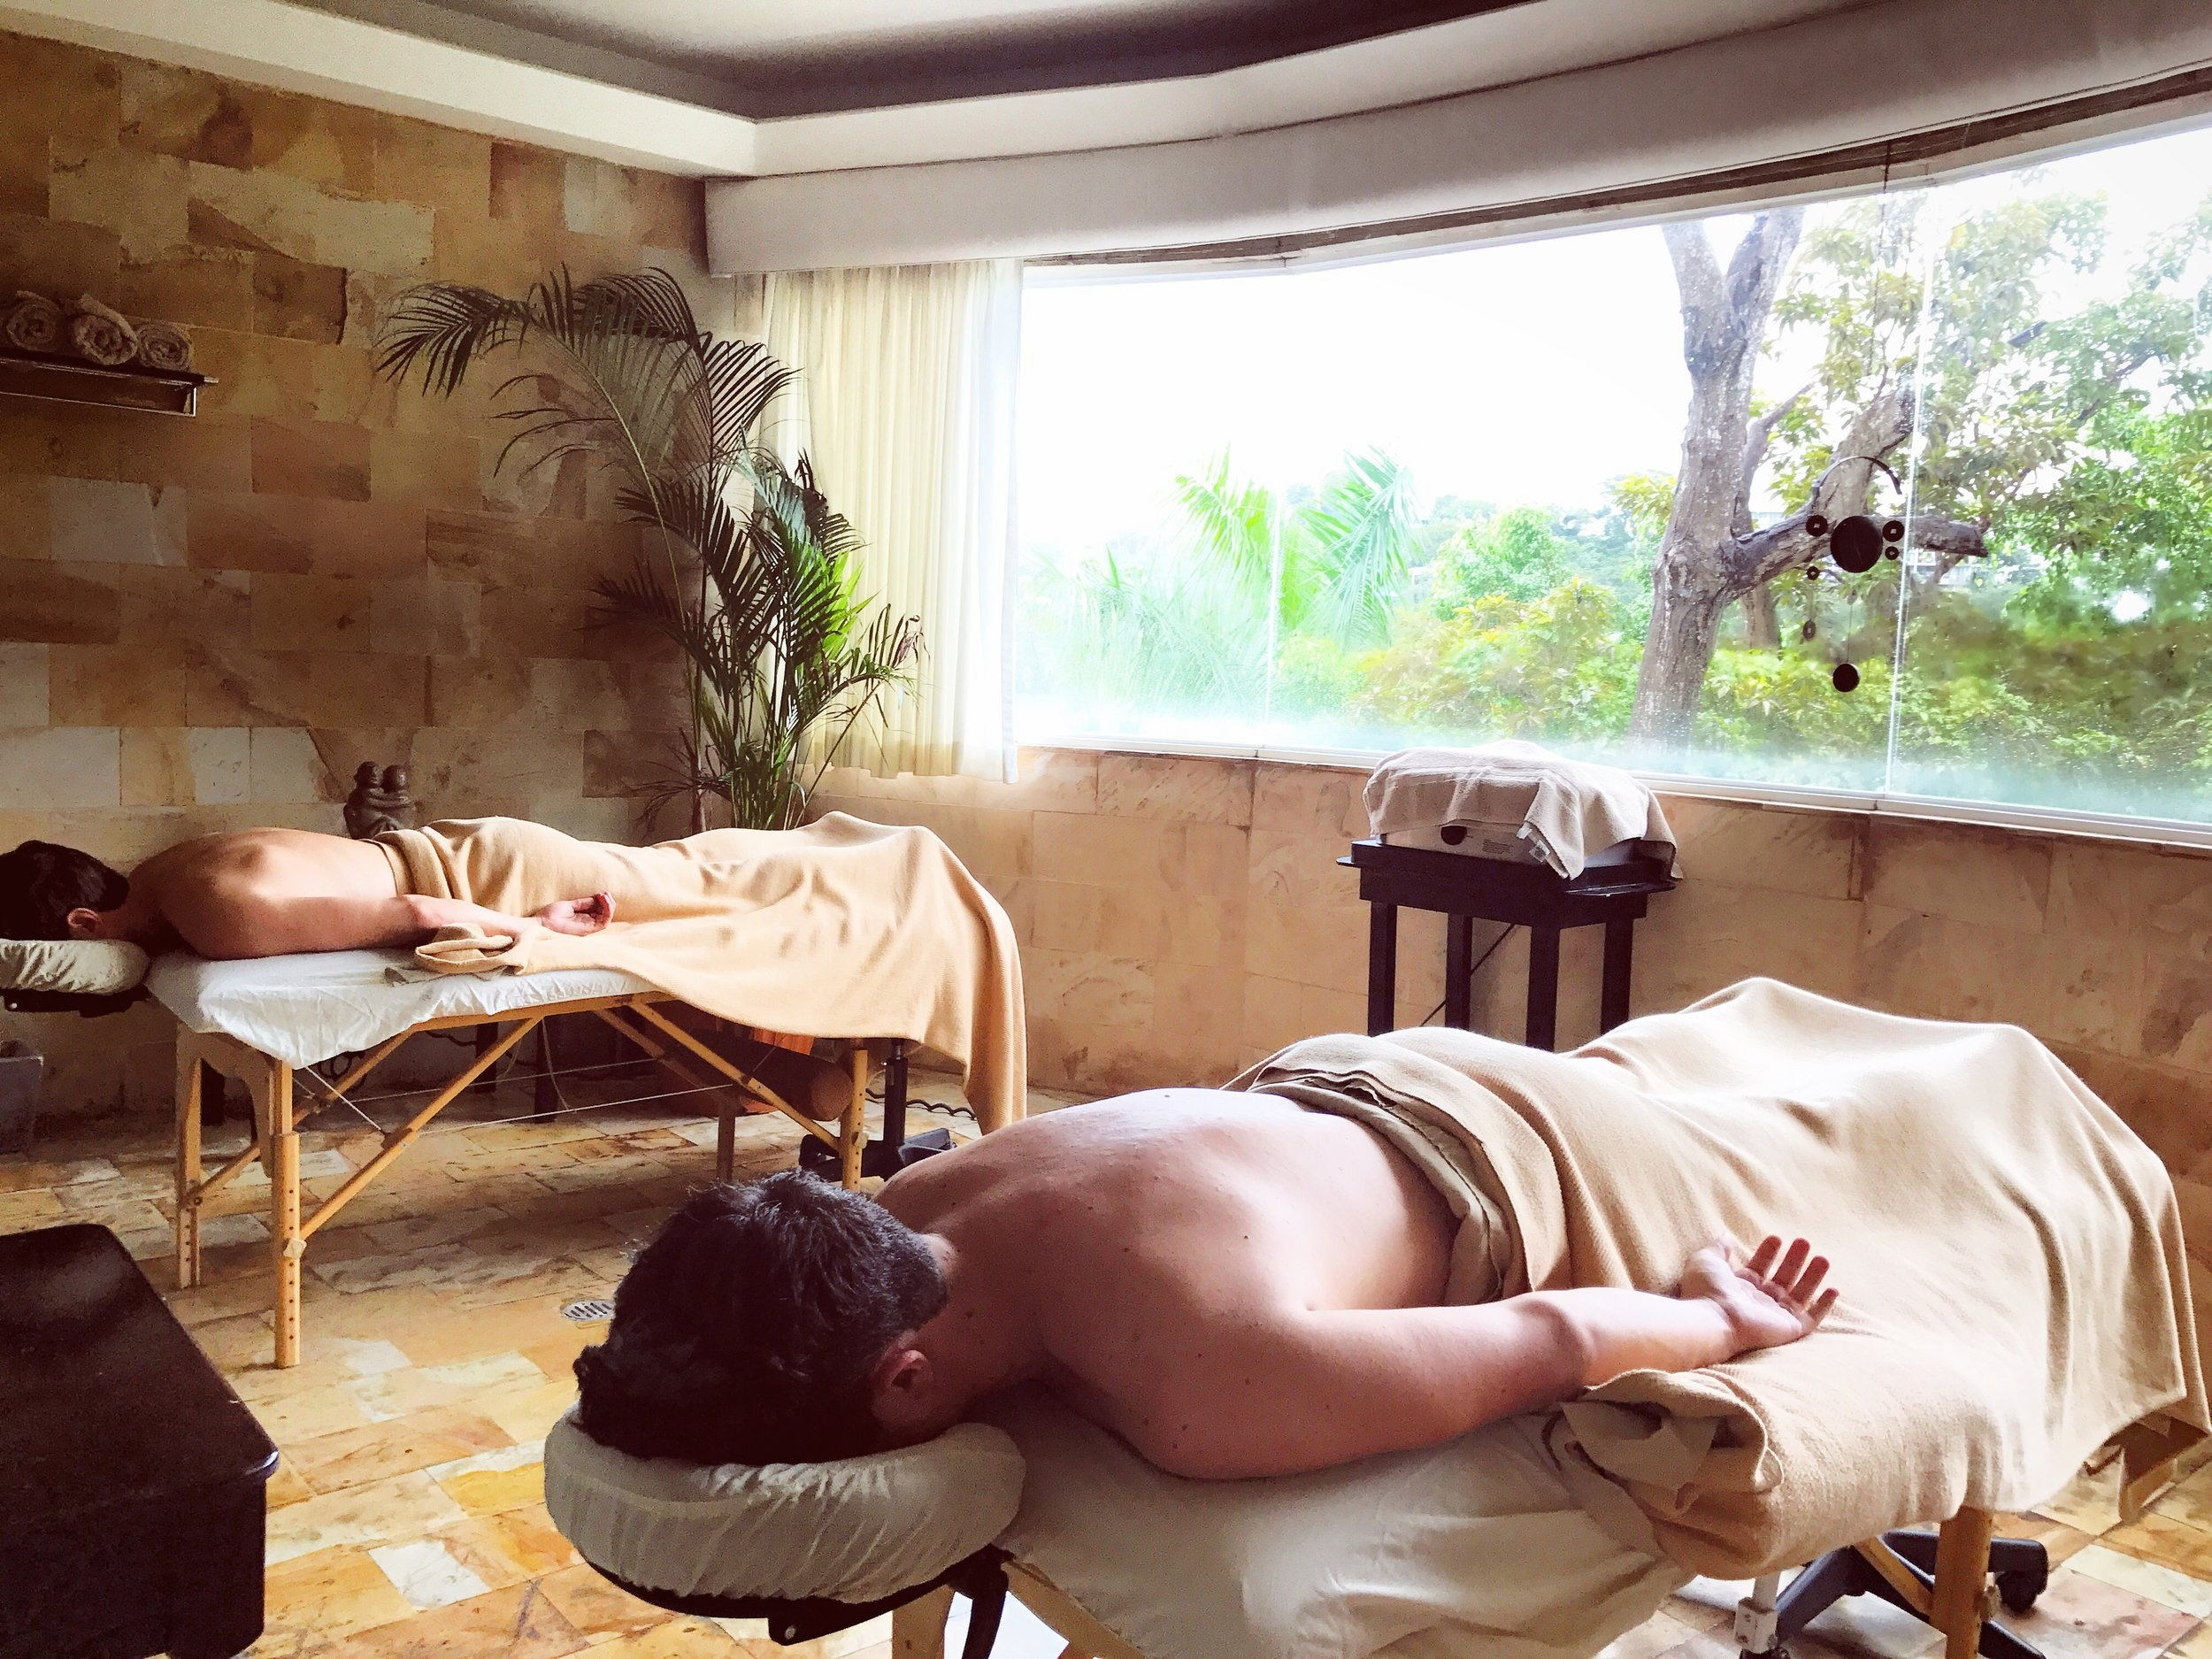 Enjoying a wonderful couple's massage at the Spa